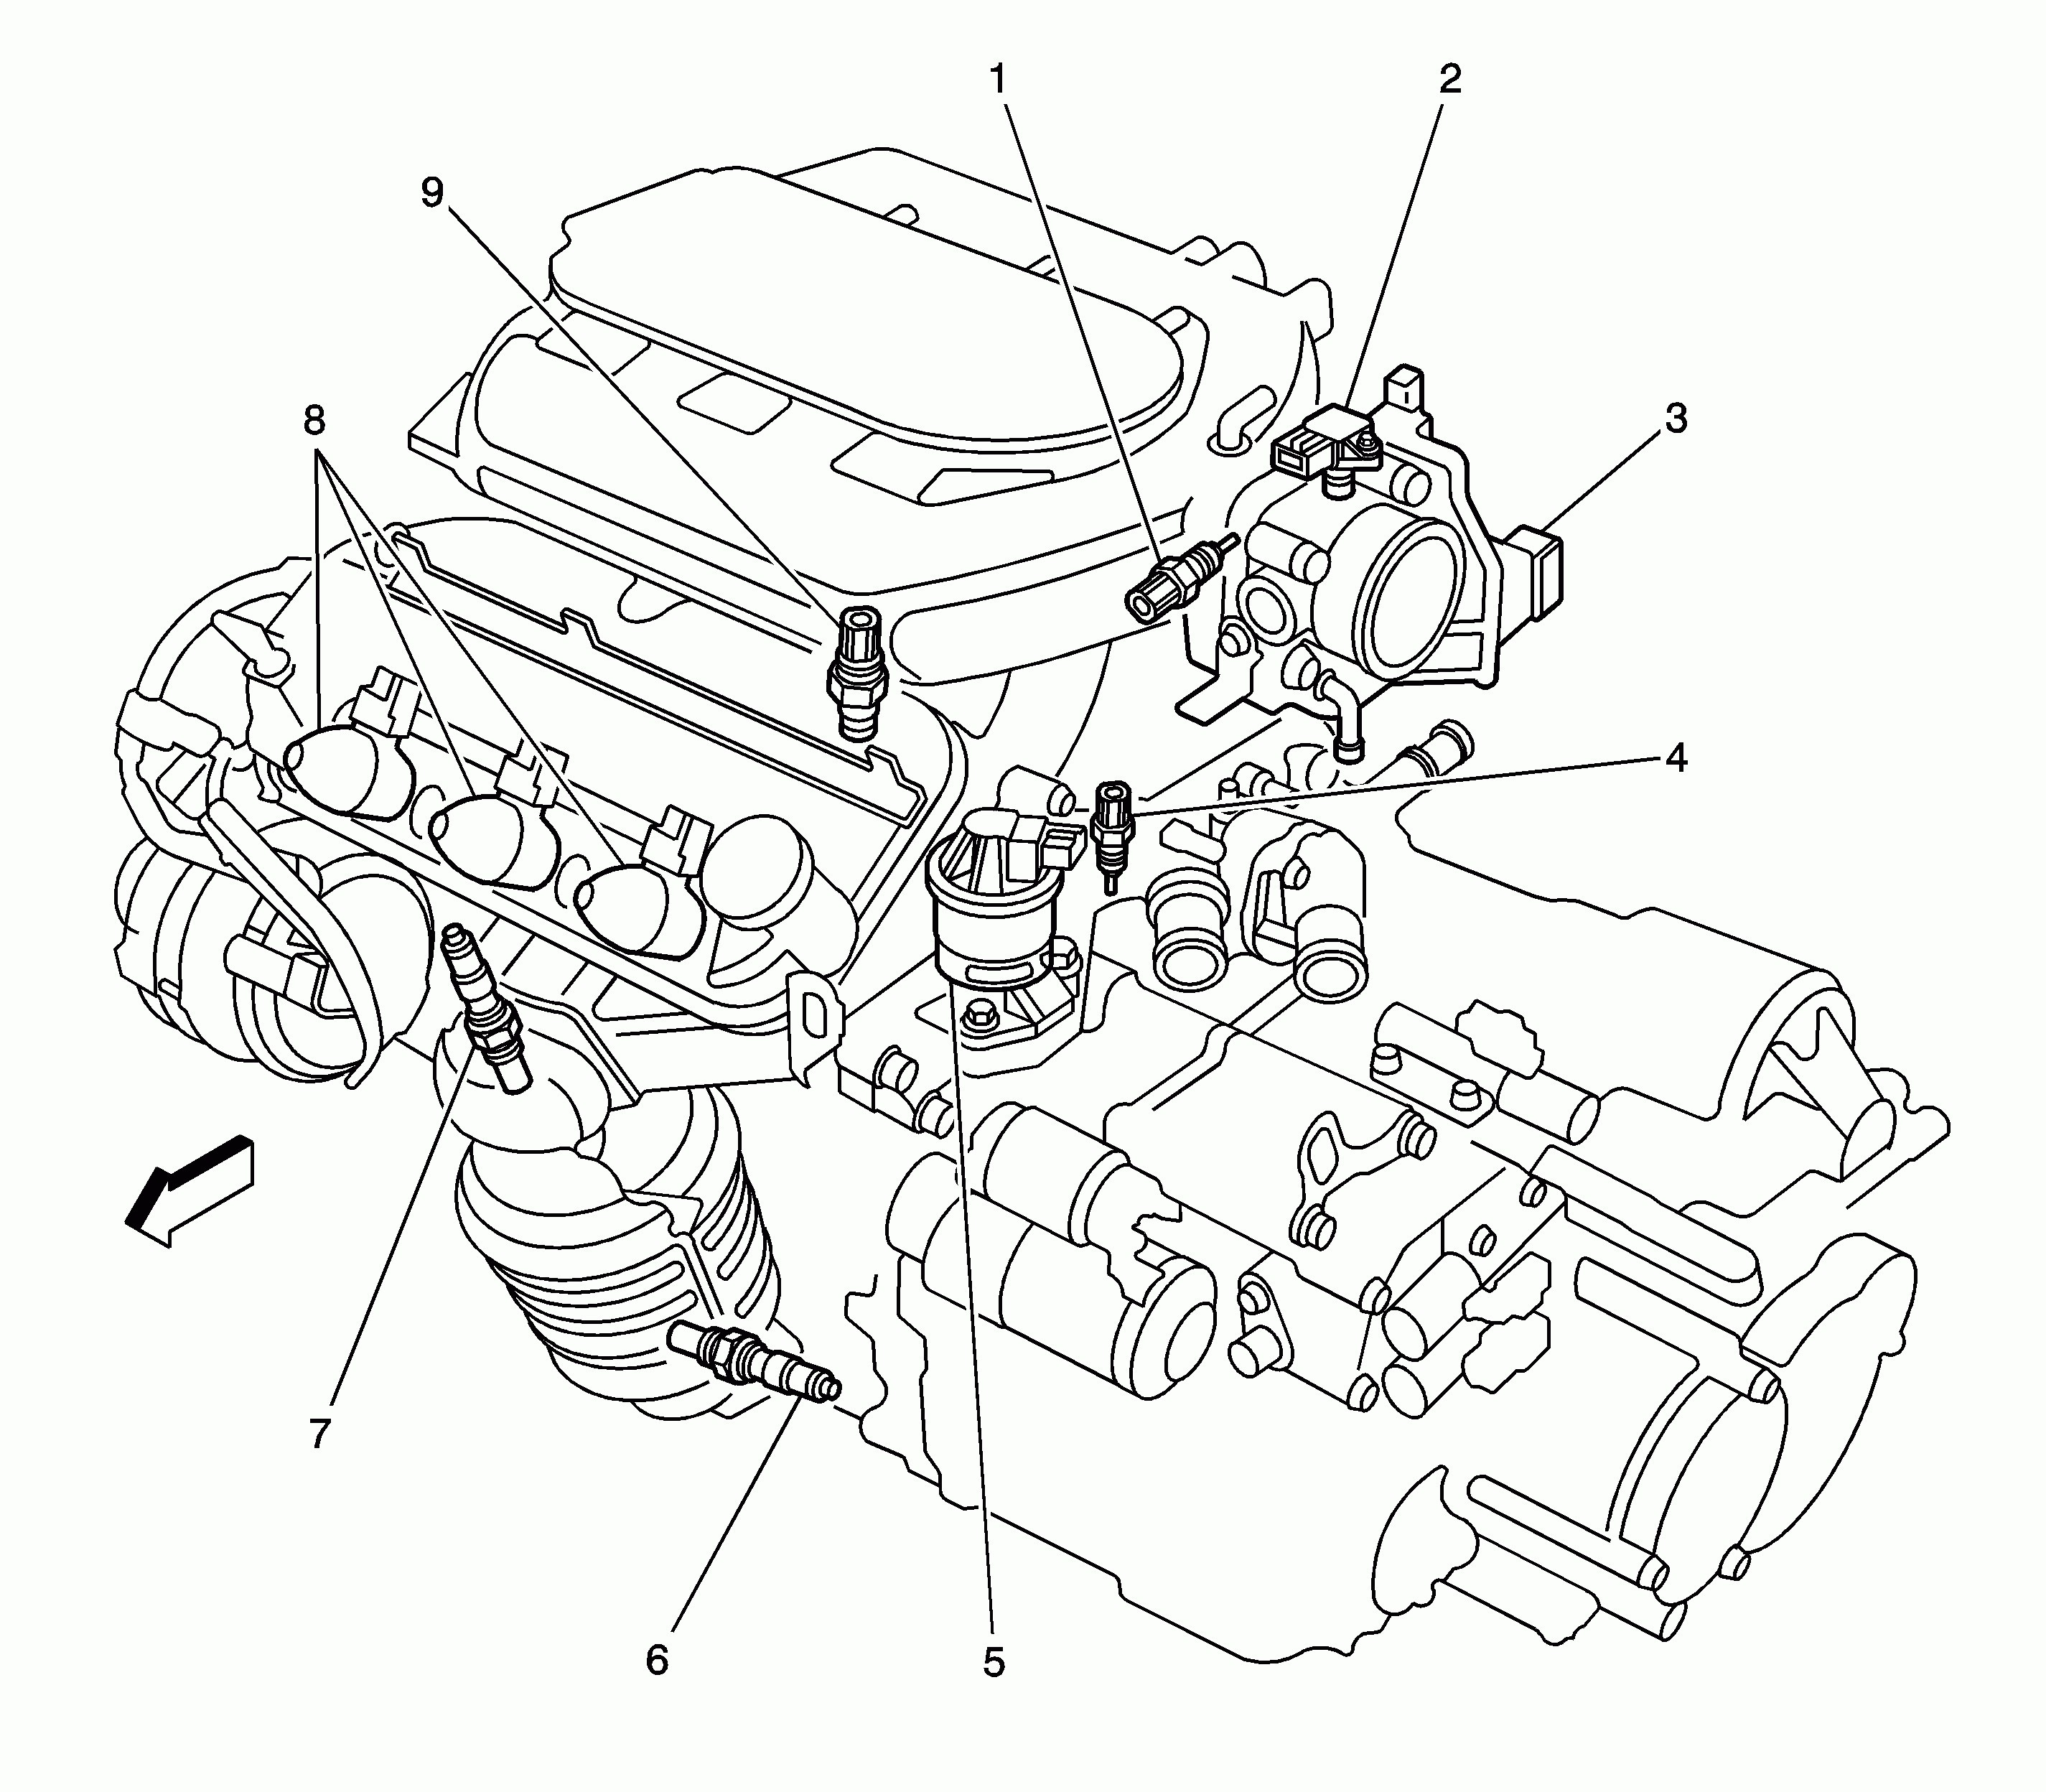 2006 Saturn Ion Engine Diagram Saturn 3 0 Engine Diagram Trusted Wiring Diagrams • Of 2006 Saturn Ion Engine Diagram E4od Fluid Diagram Experts Wiring Diagram •